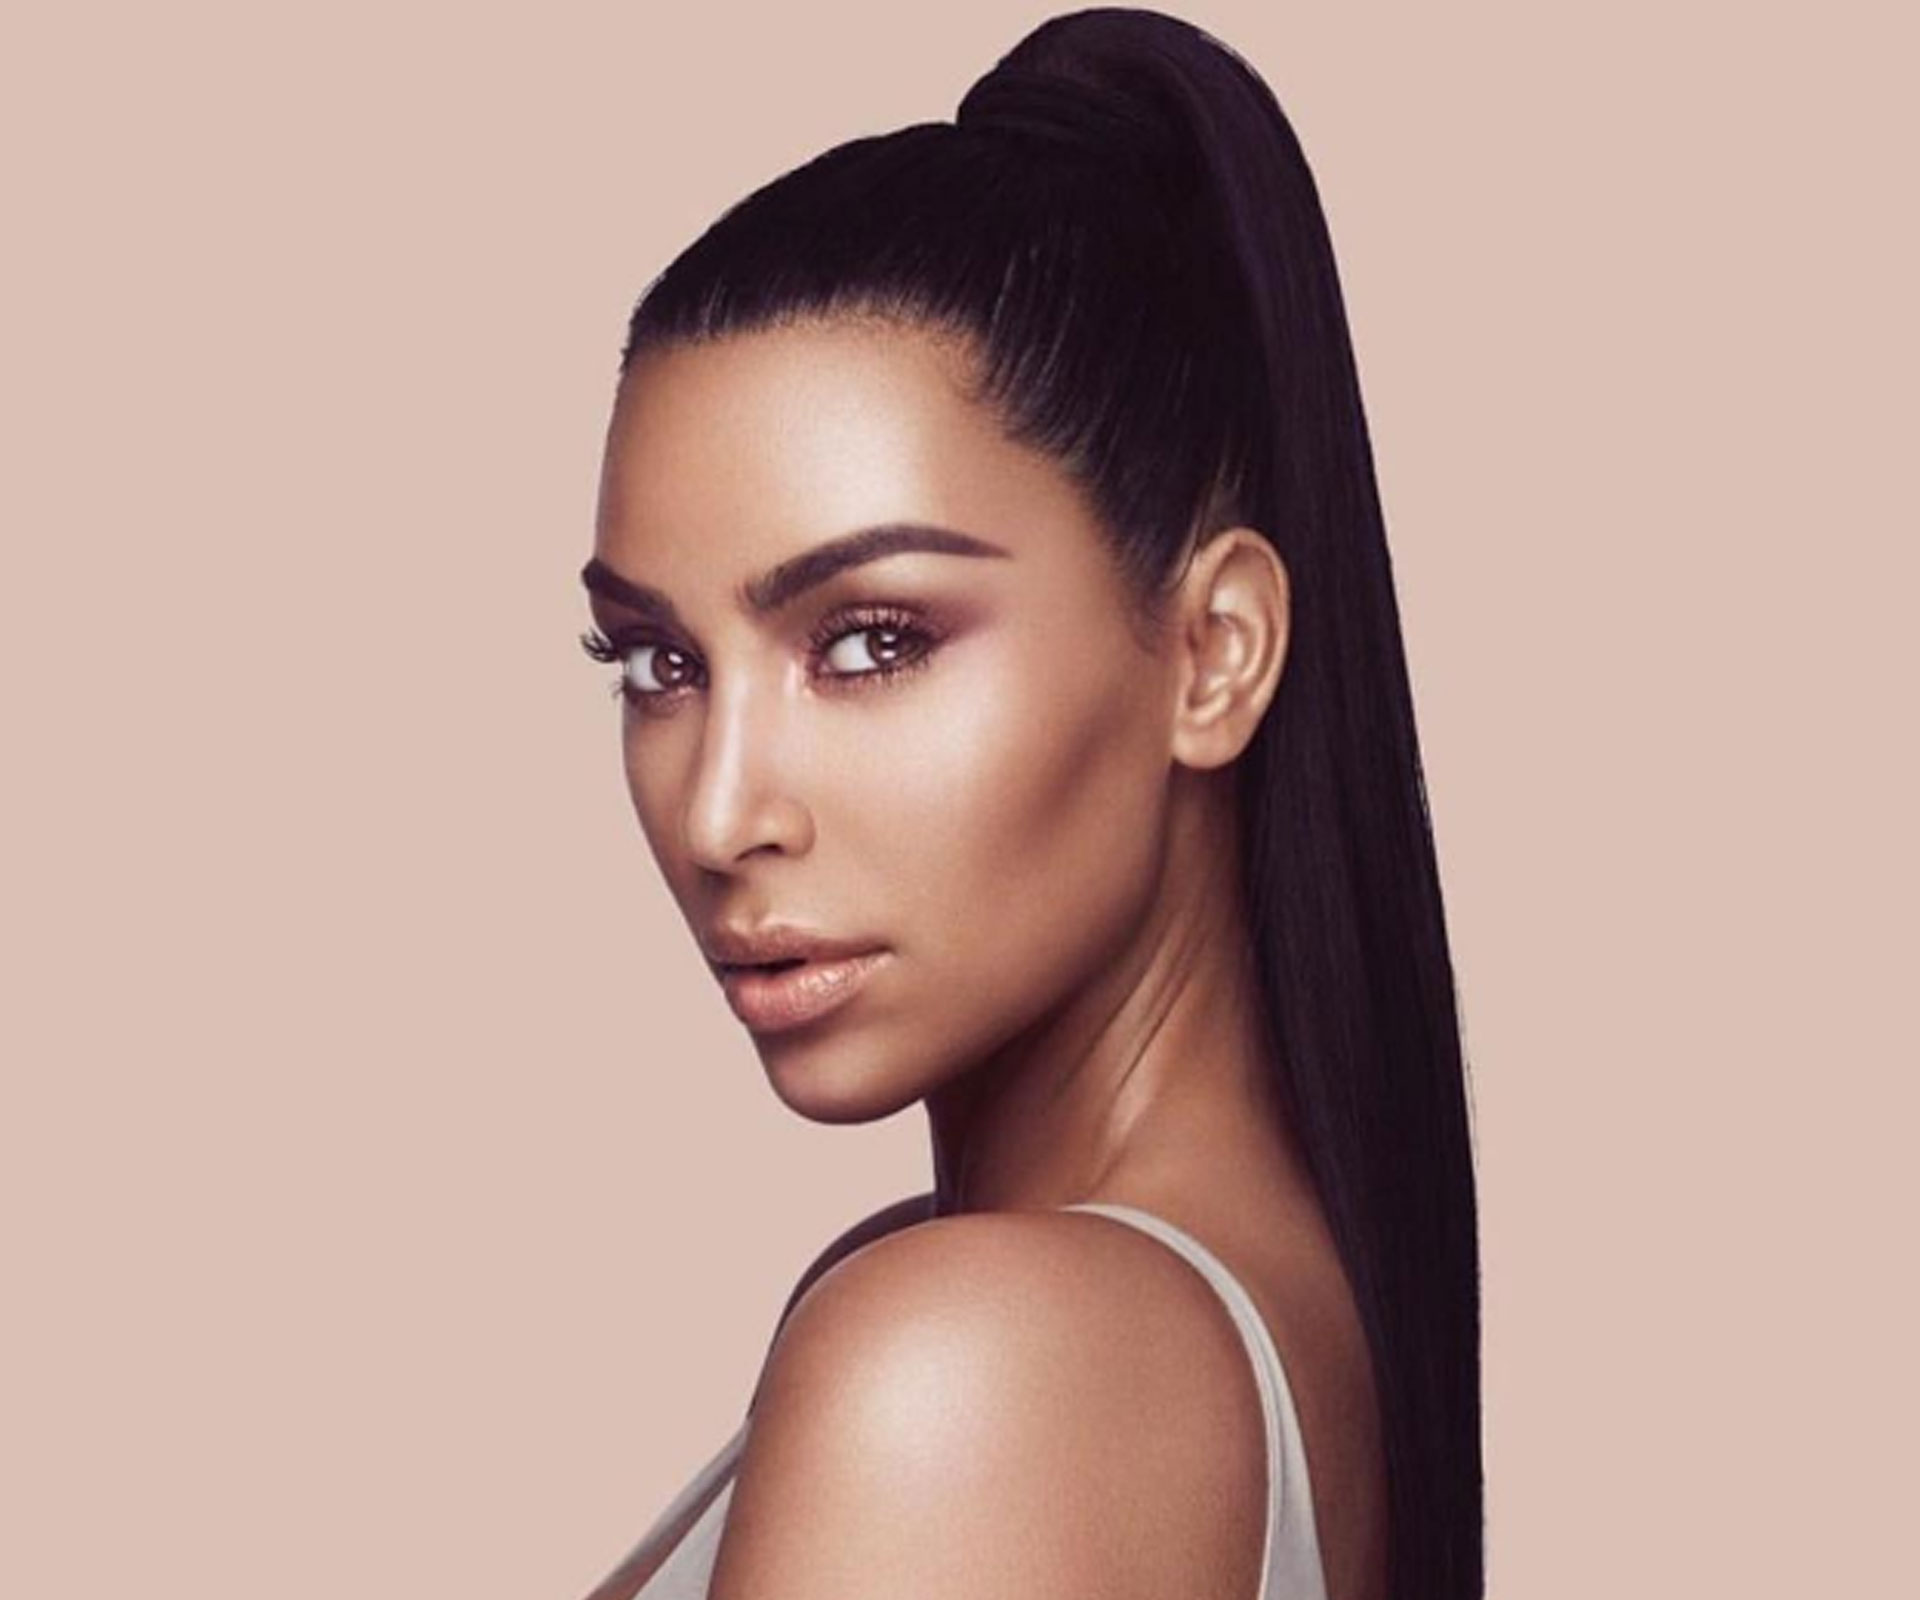 Kim Kardashian Shocked After Taking Online Personality Quiz